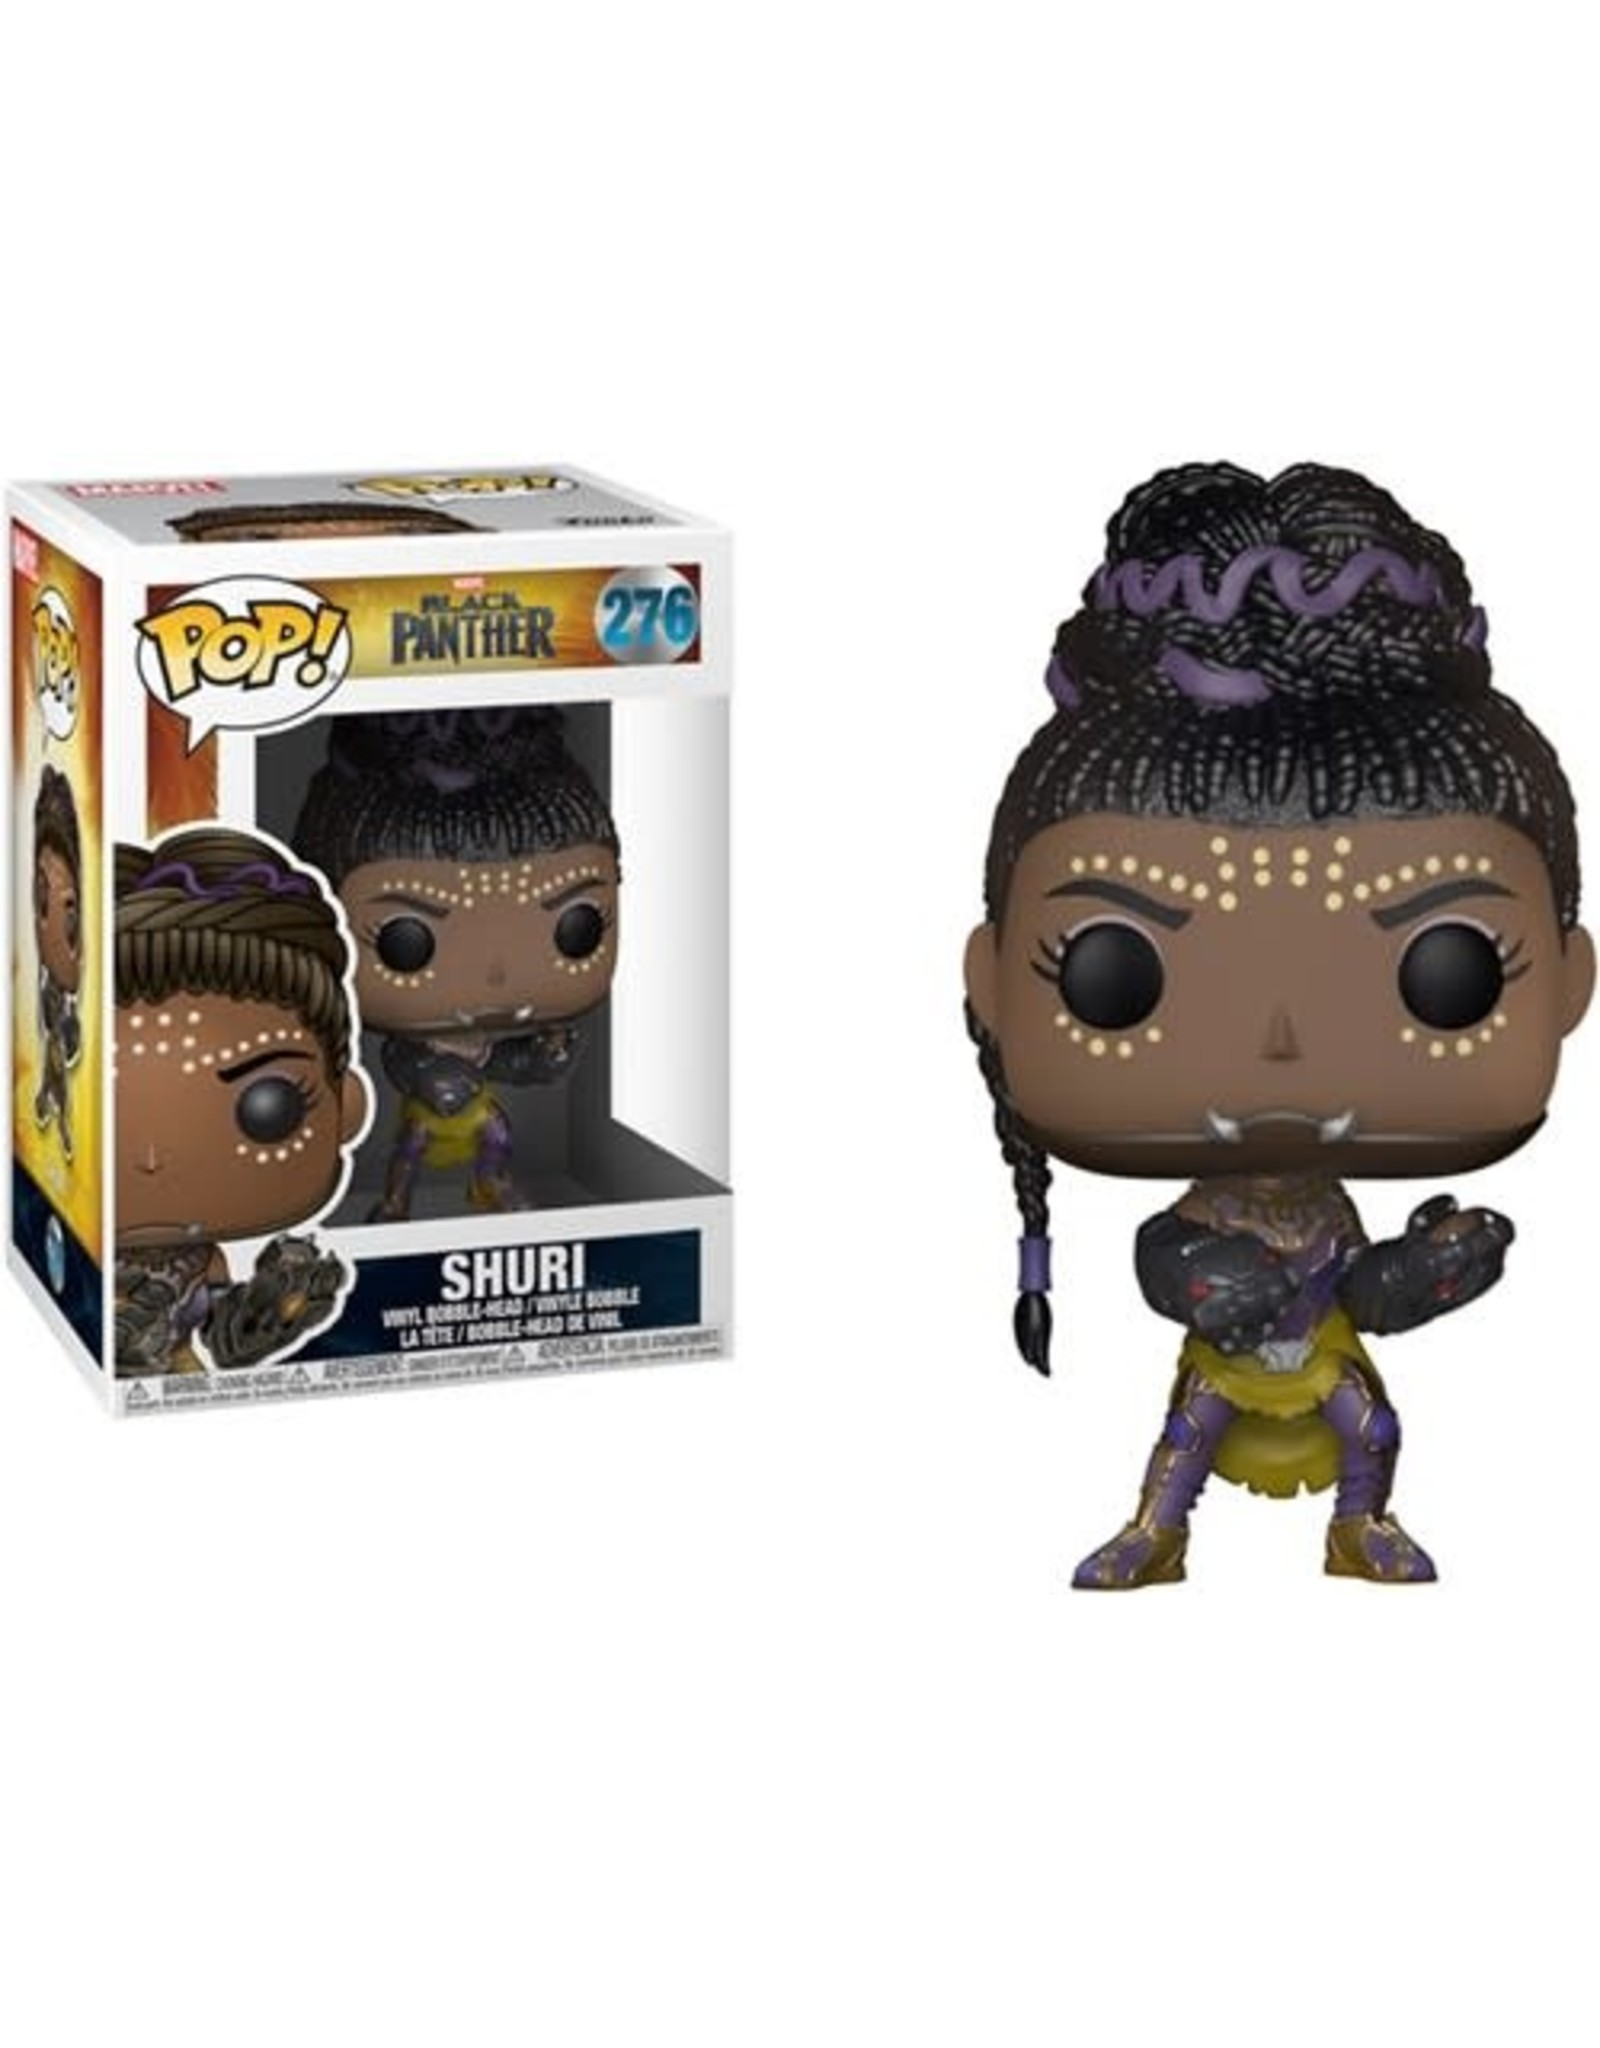 Funko Pop! Funko Pop! Marvel nr276 Black Panther - Shuri